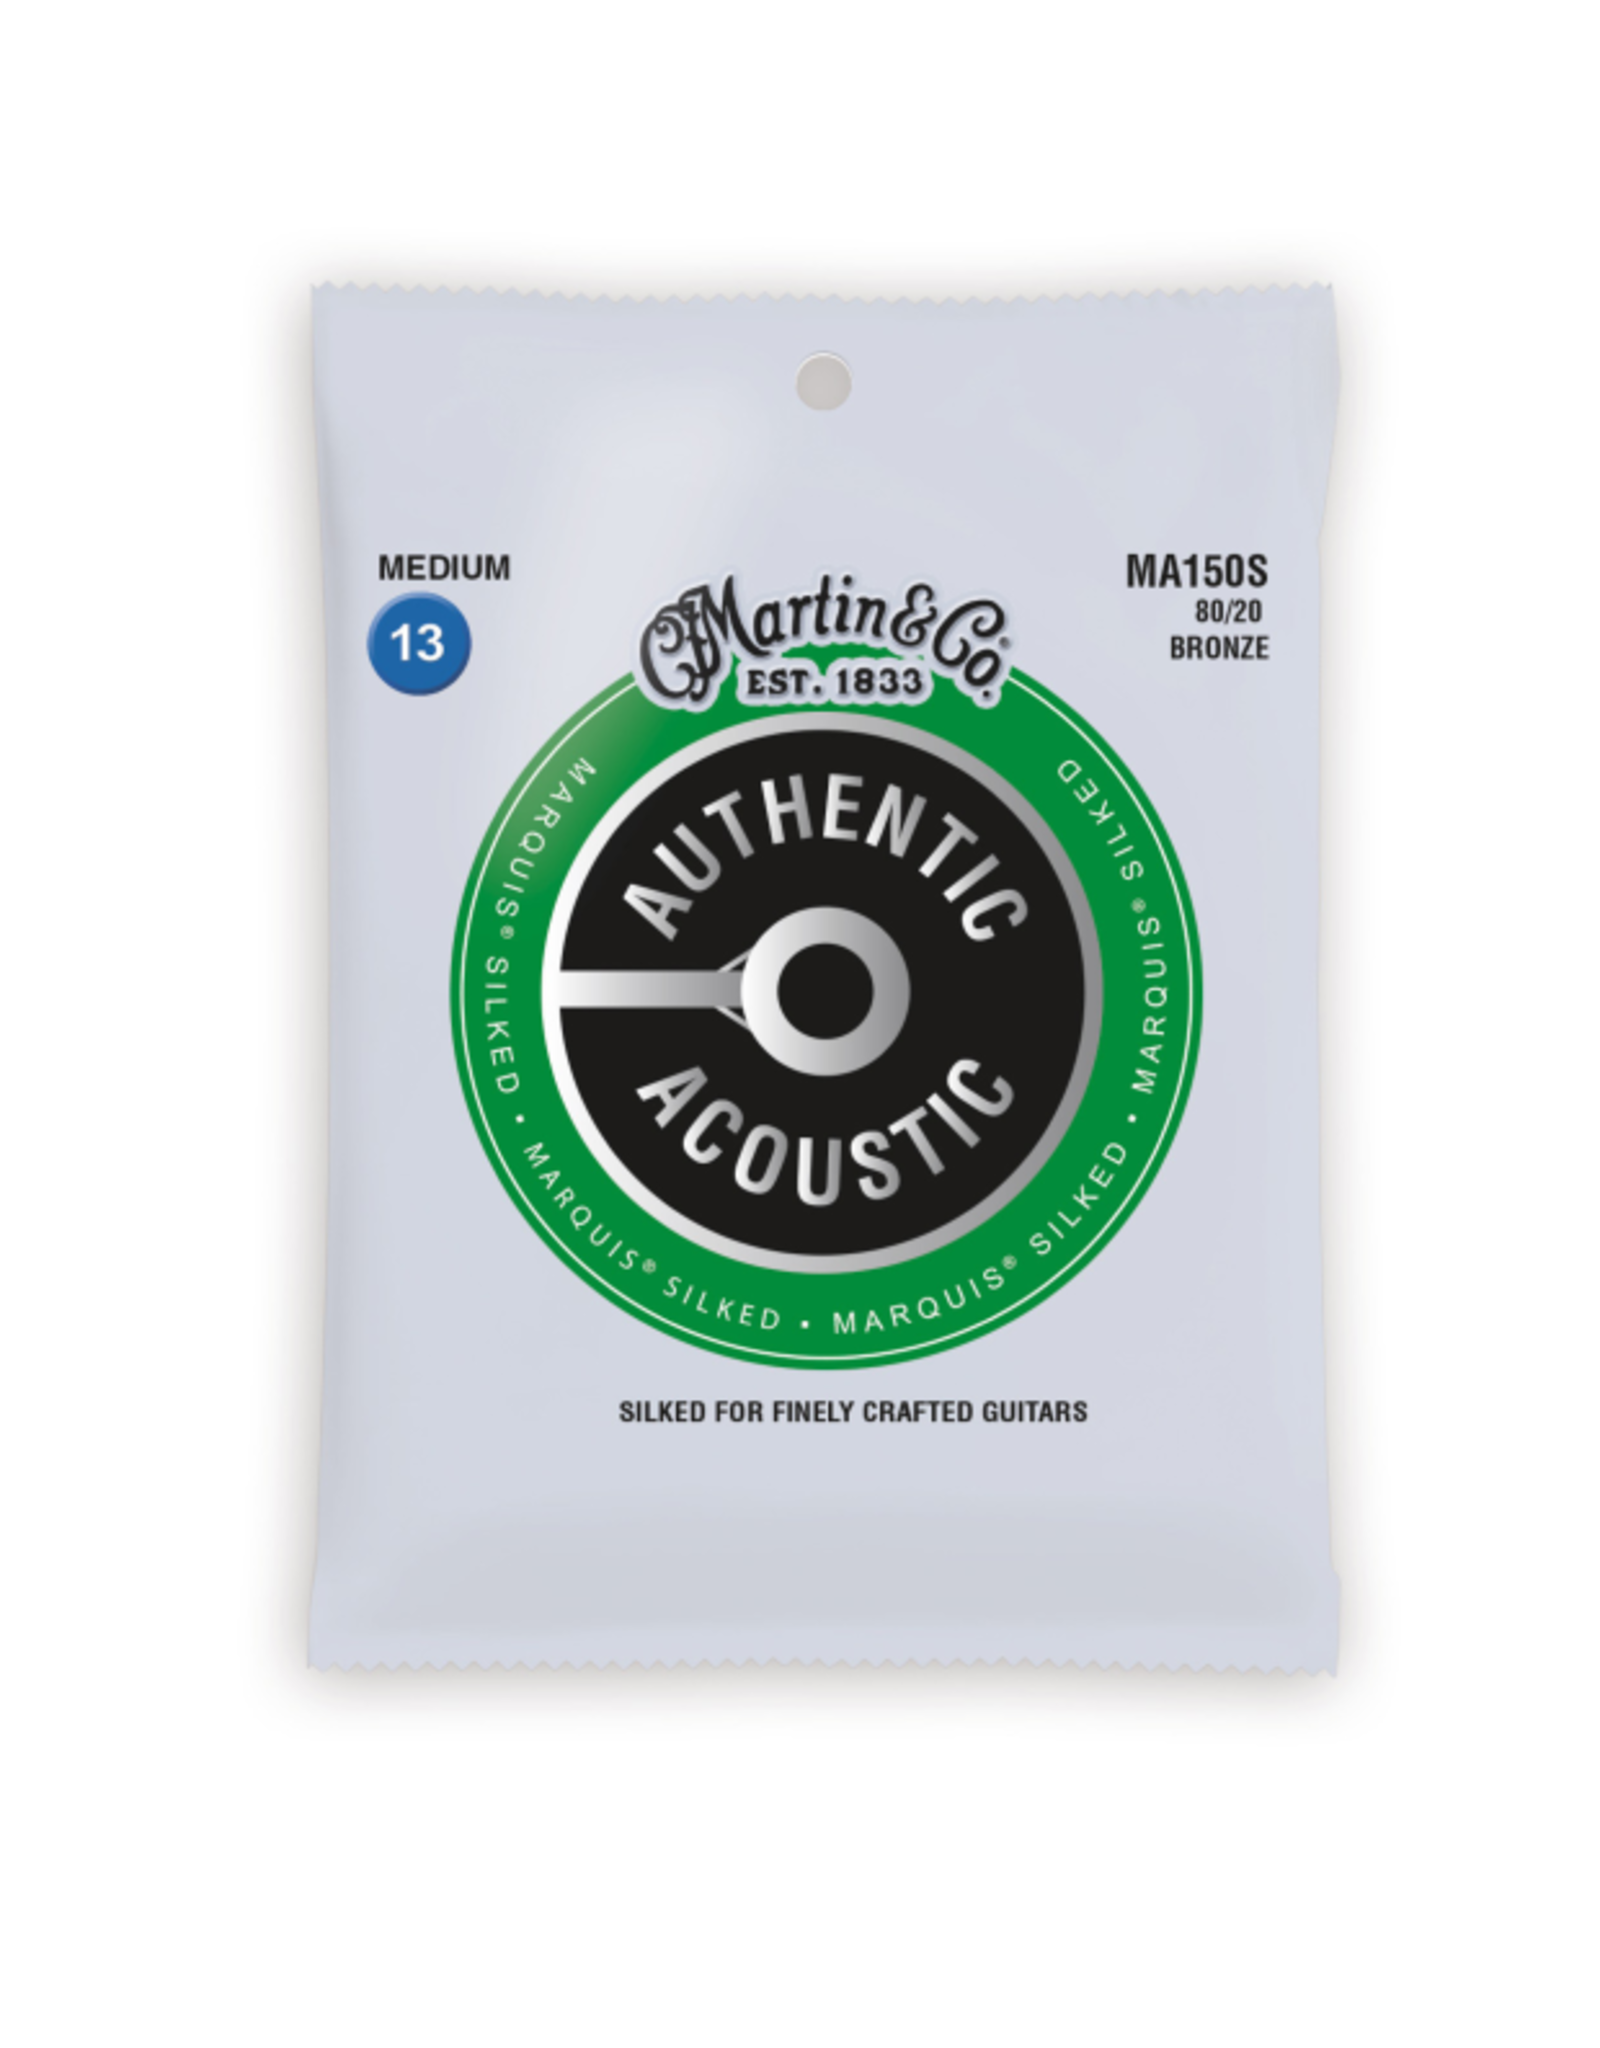 Martin & Co Martin MA150S Authentic Acoustic Marquis Silked 80/20 Bronze Medium Guitar Strings. 13-56